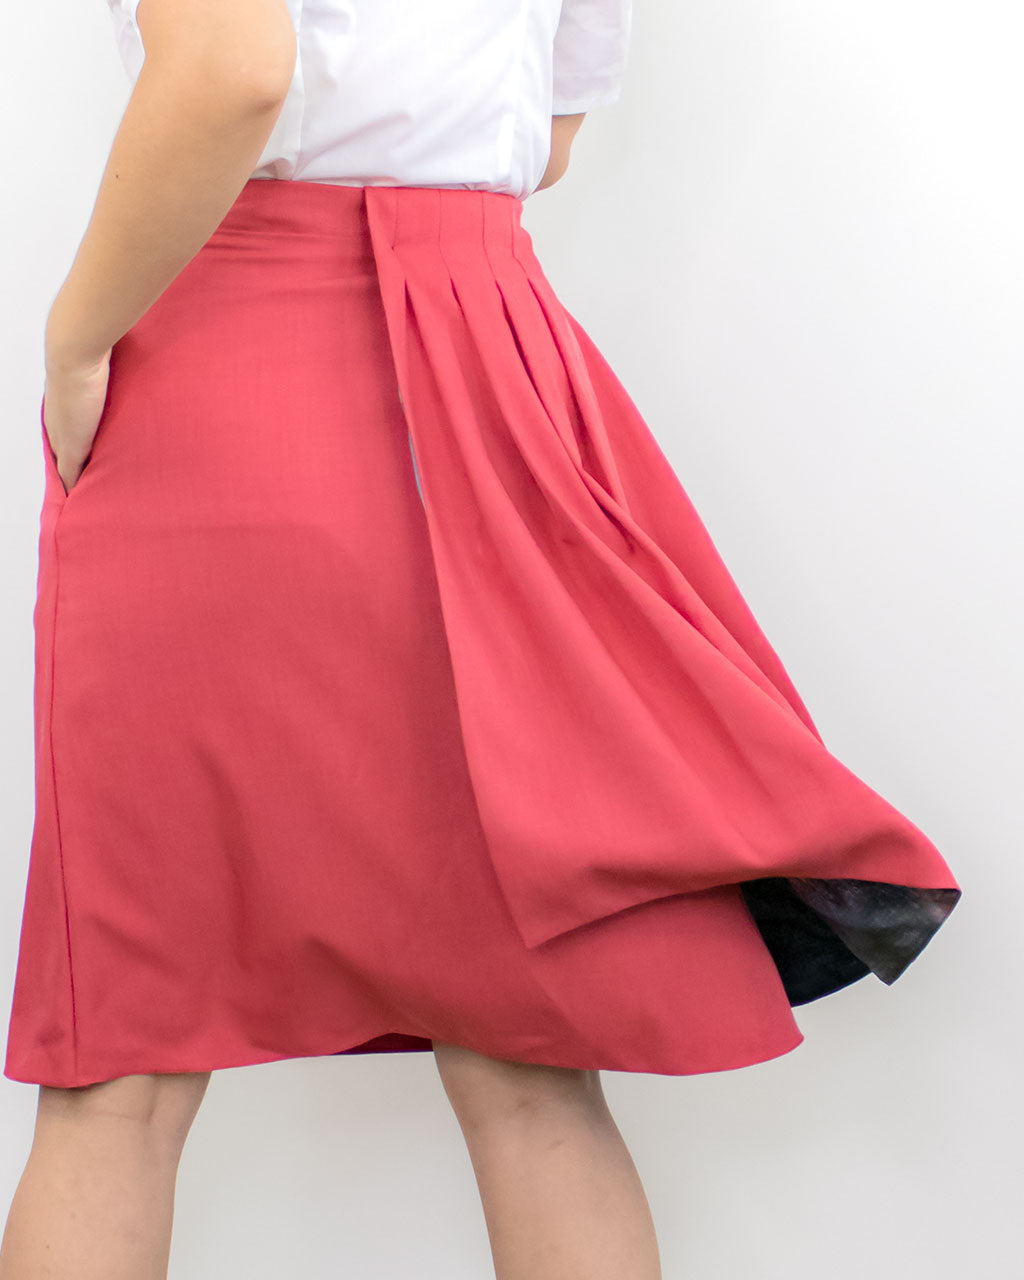 Ethical formal straight elegant a-line smart office skirt with pleats by ADKN made with sustainable recycled plastic bottles